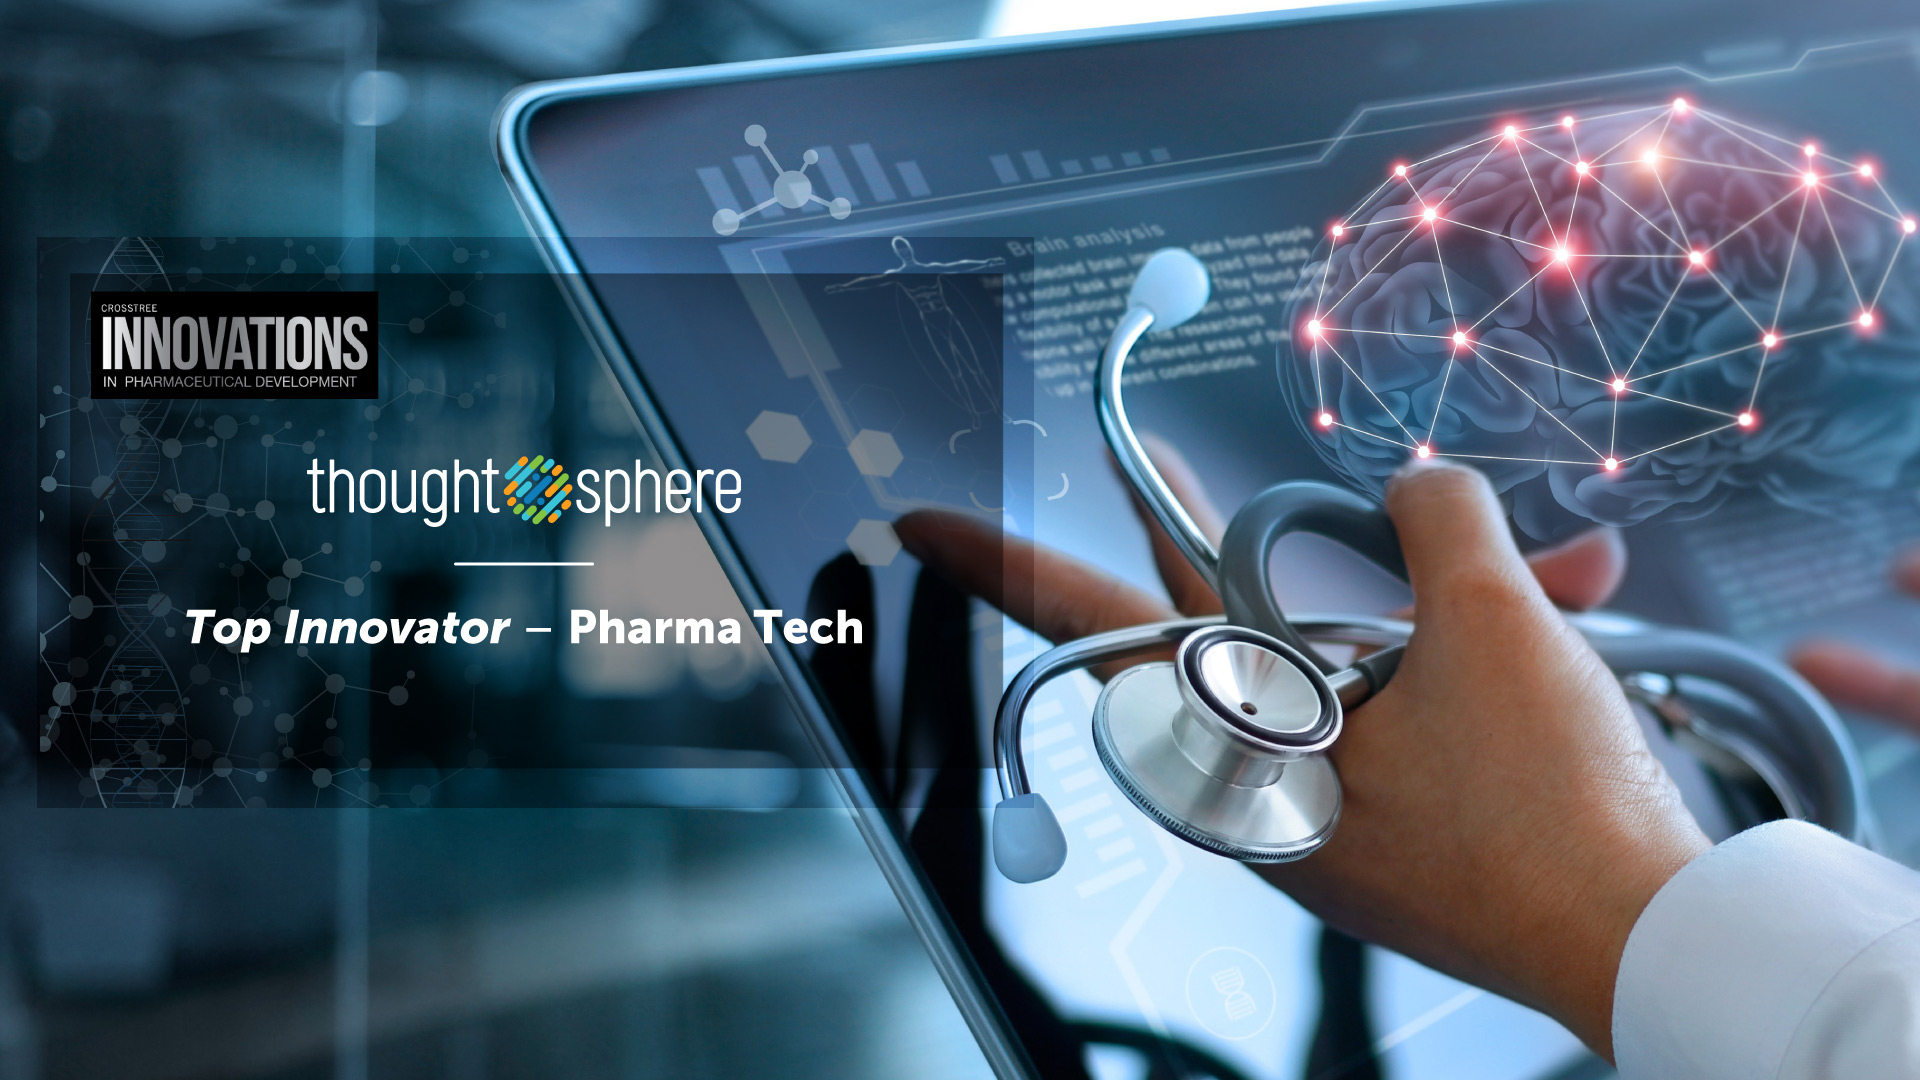 Top Innovator - Pharma Tech